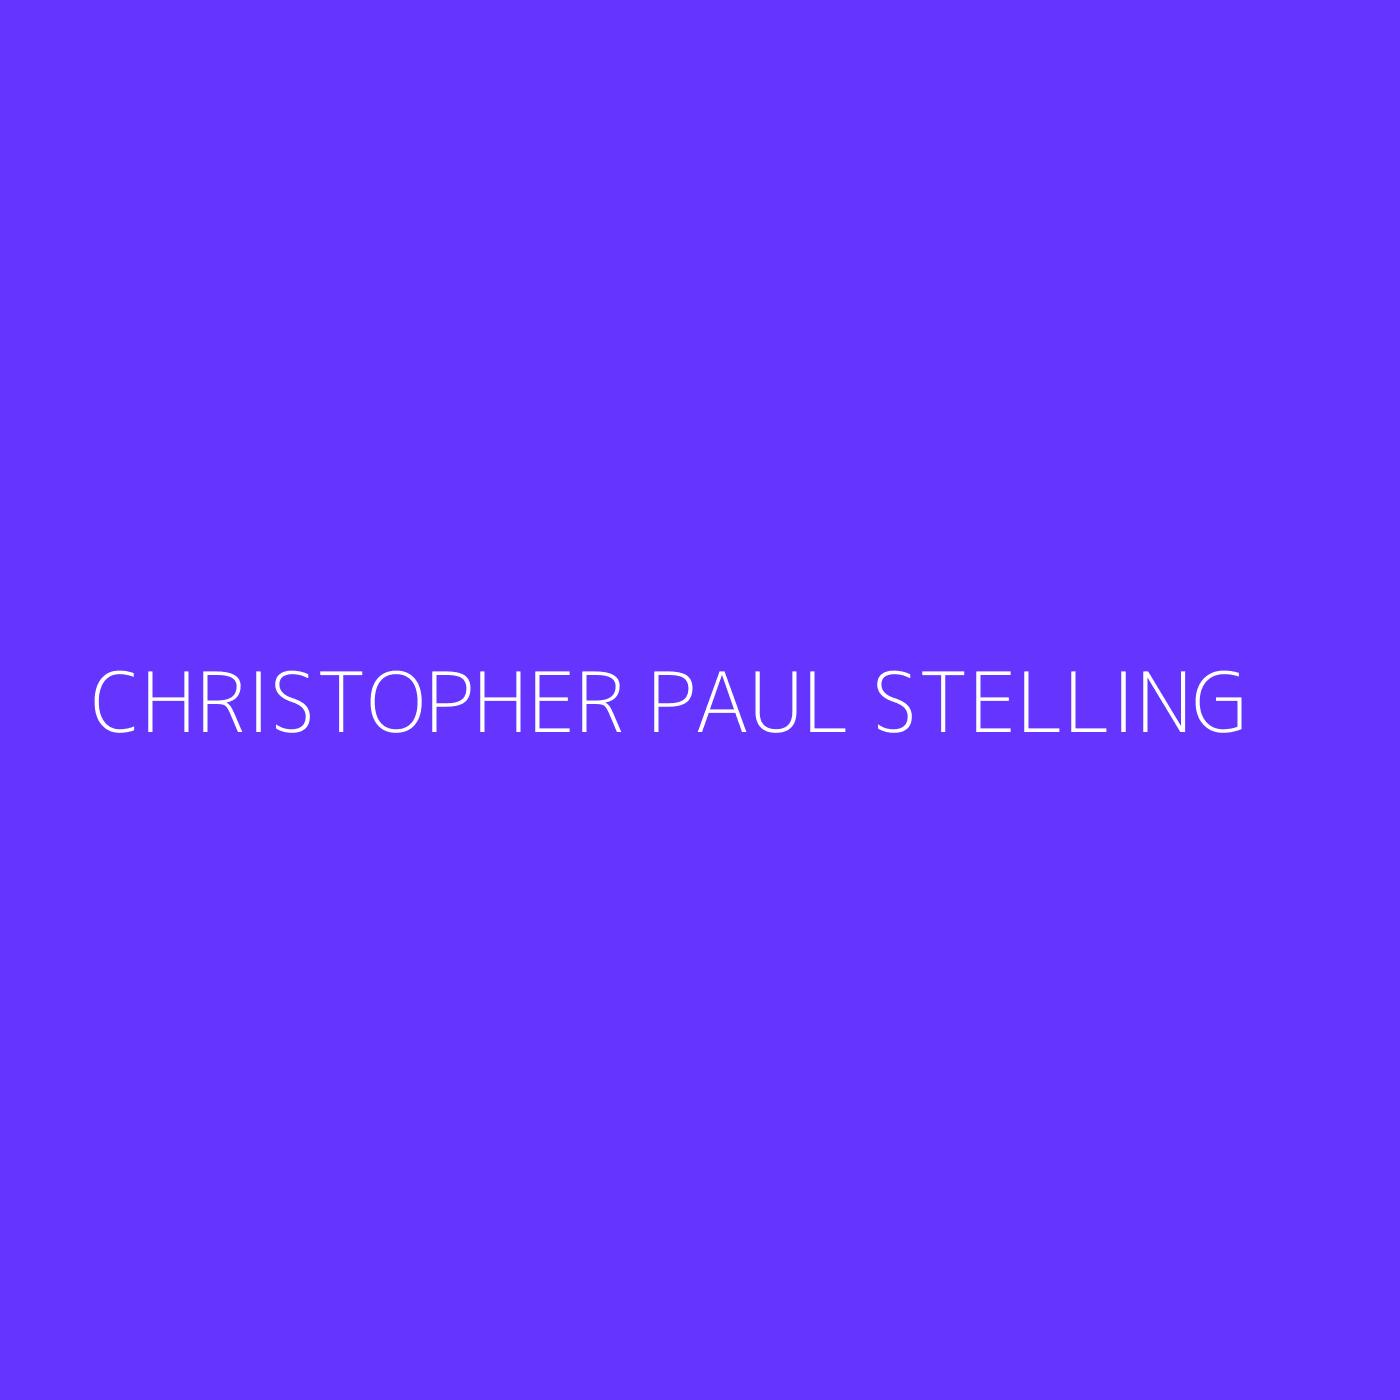 Christopher Paul Stelling Playlist Artwork